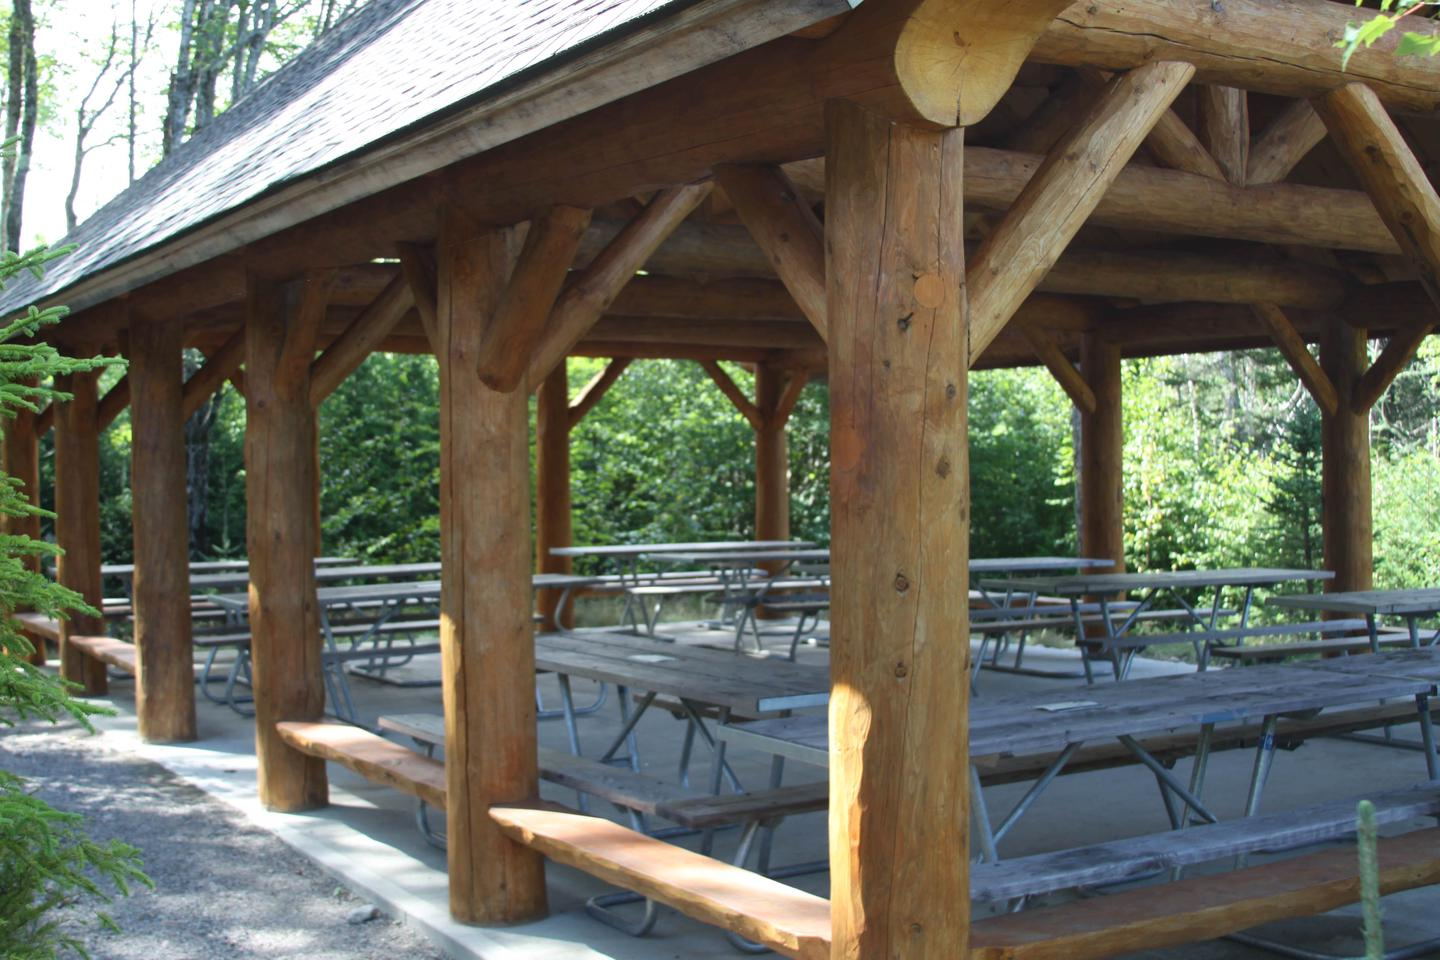 A covered pavilion for shared use of picnic tables.Shared group sites pavilion.